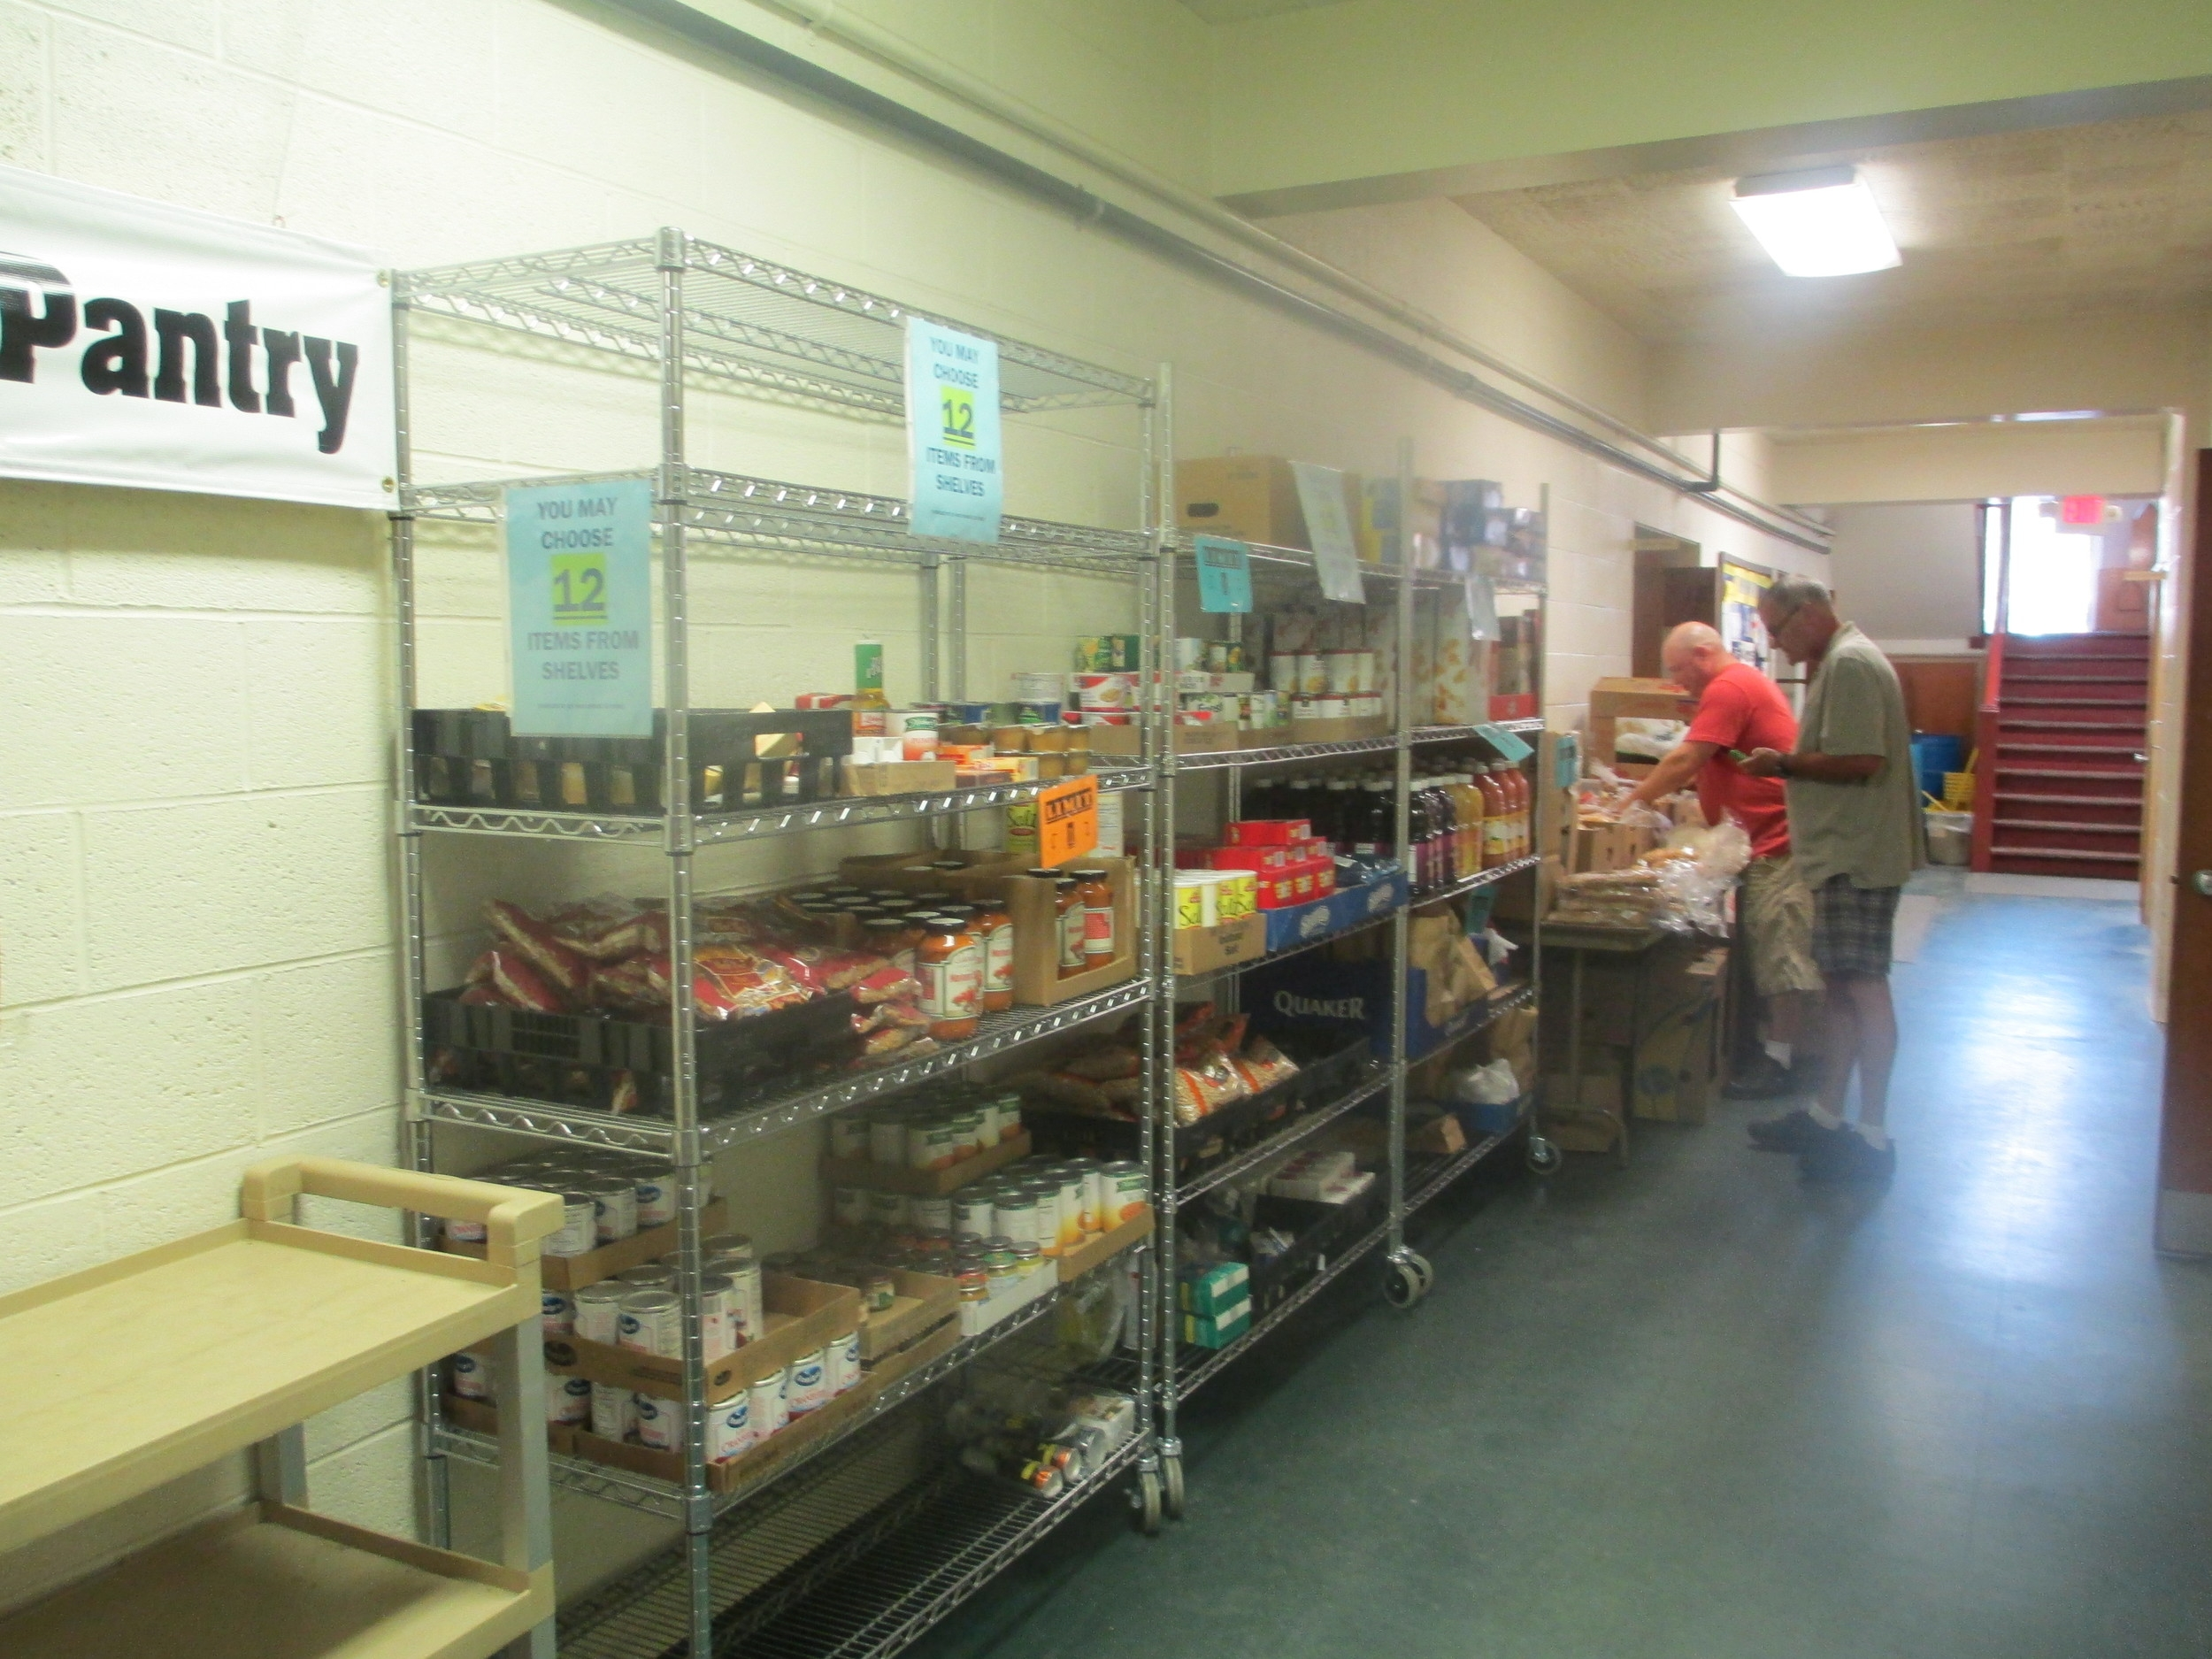 Visitors and Clients are able to select or shop from various selections of food and hygiene supplies.